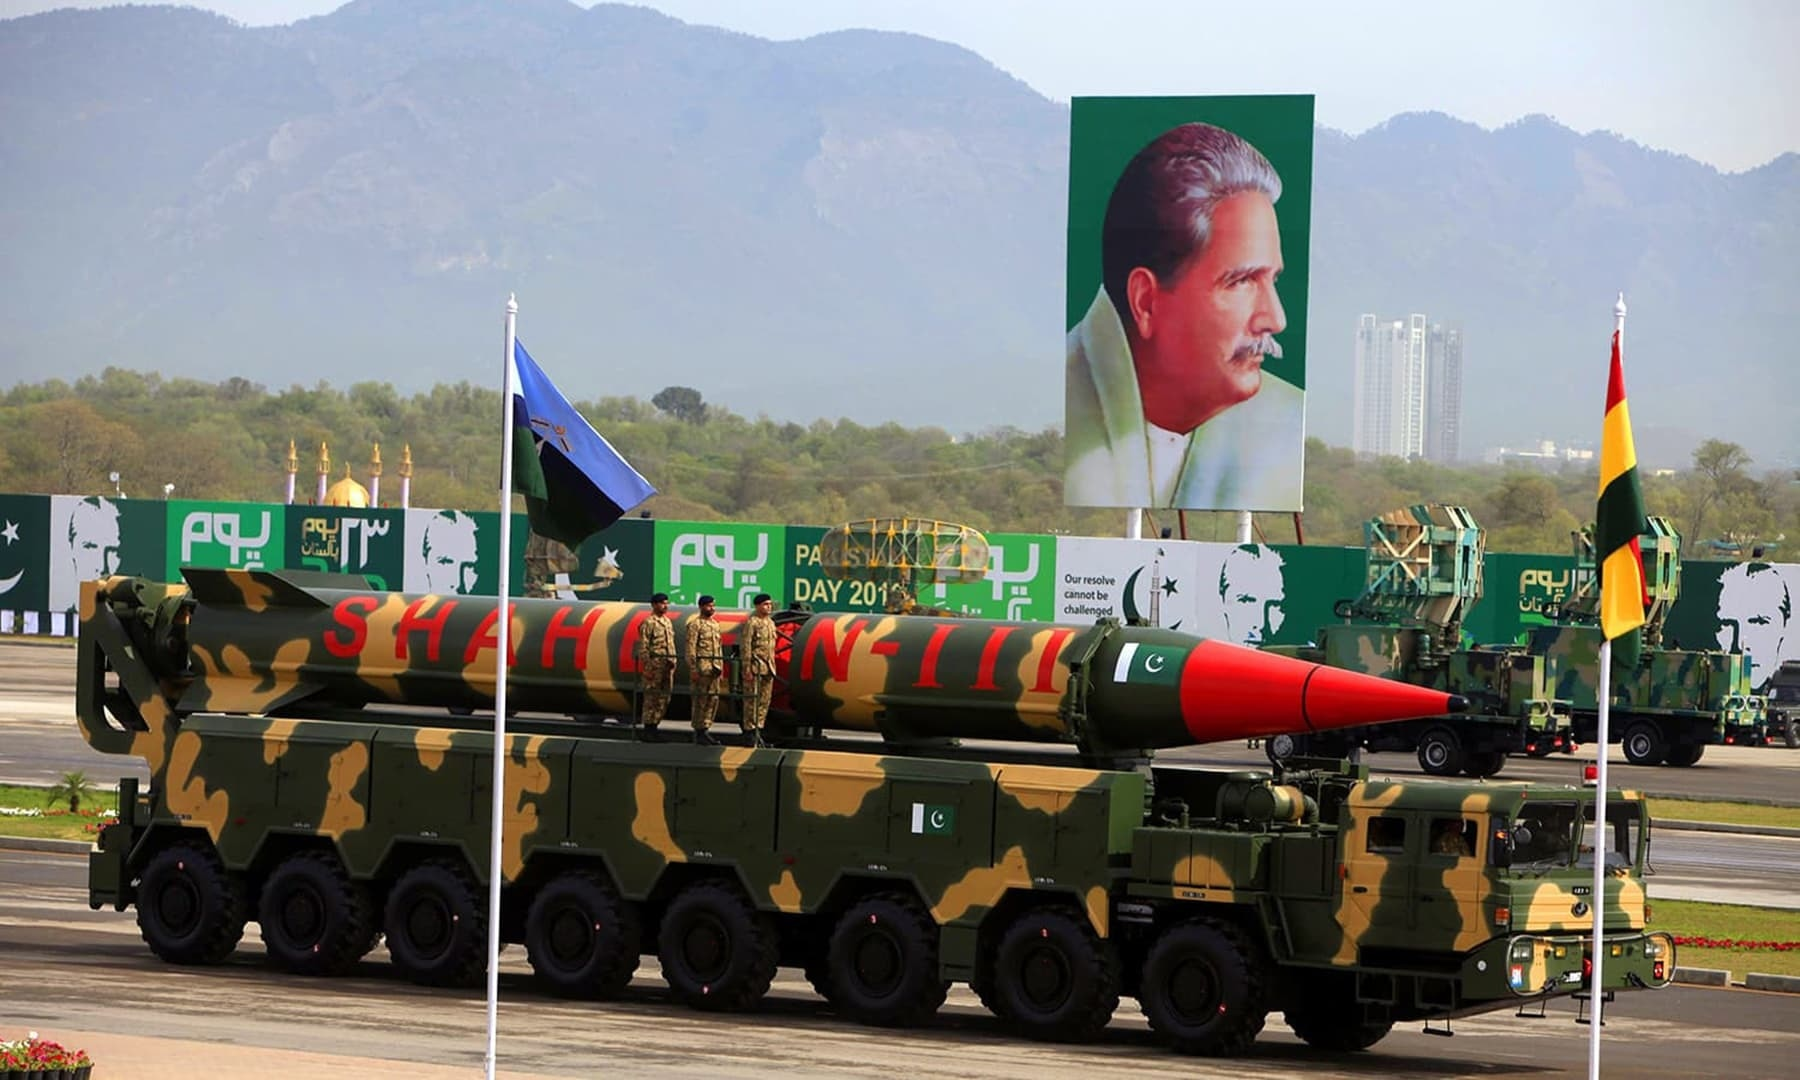 Ballistic missile (Shaheen-III) being displayed during the Pakistan Day parade in Islamabad on March 23, 2016 | Reuters